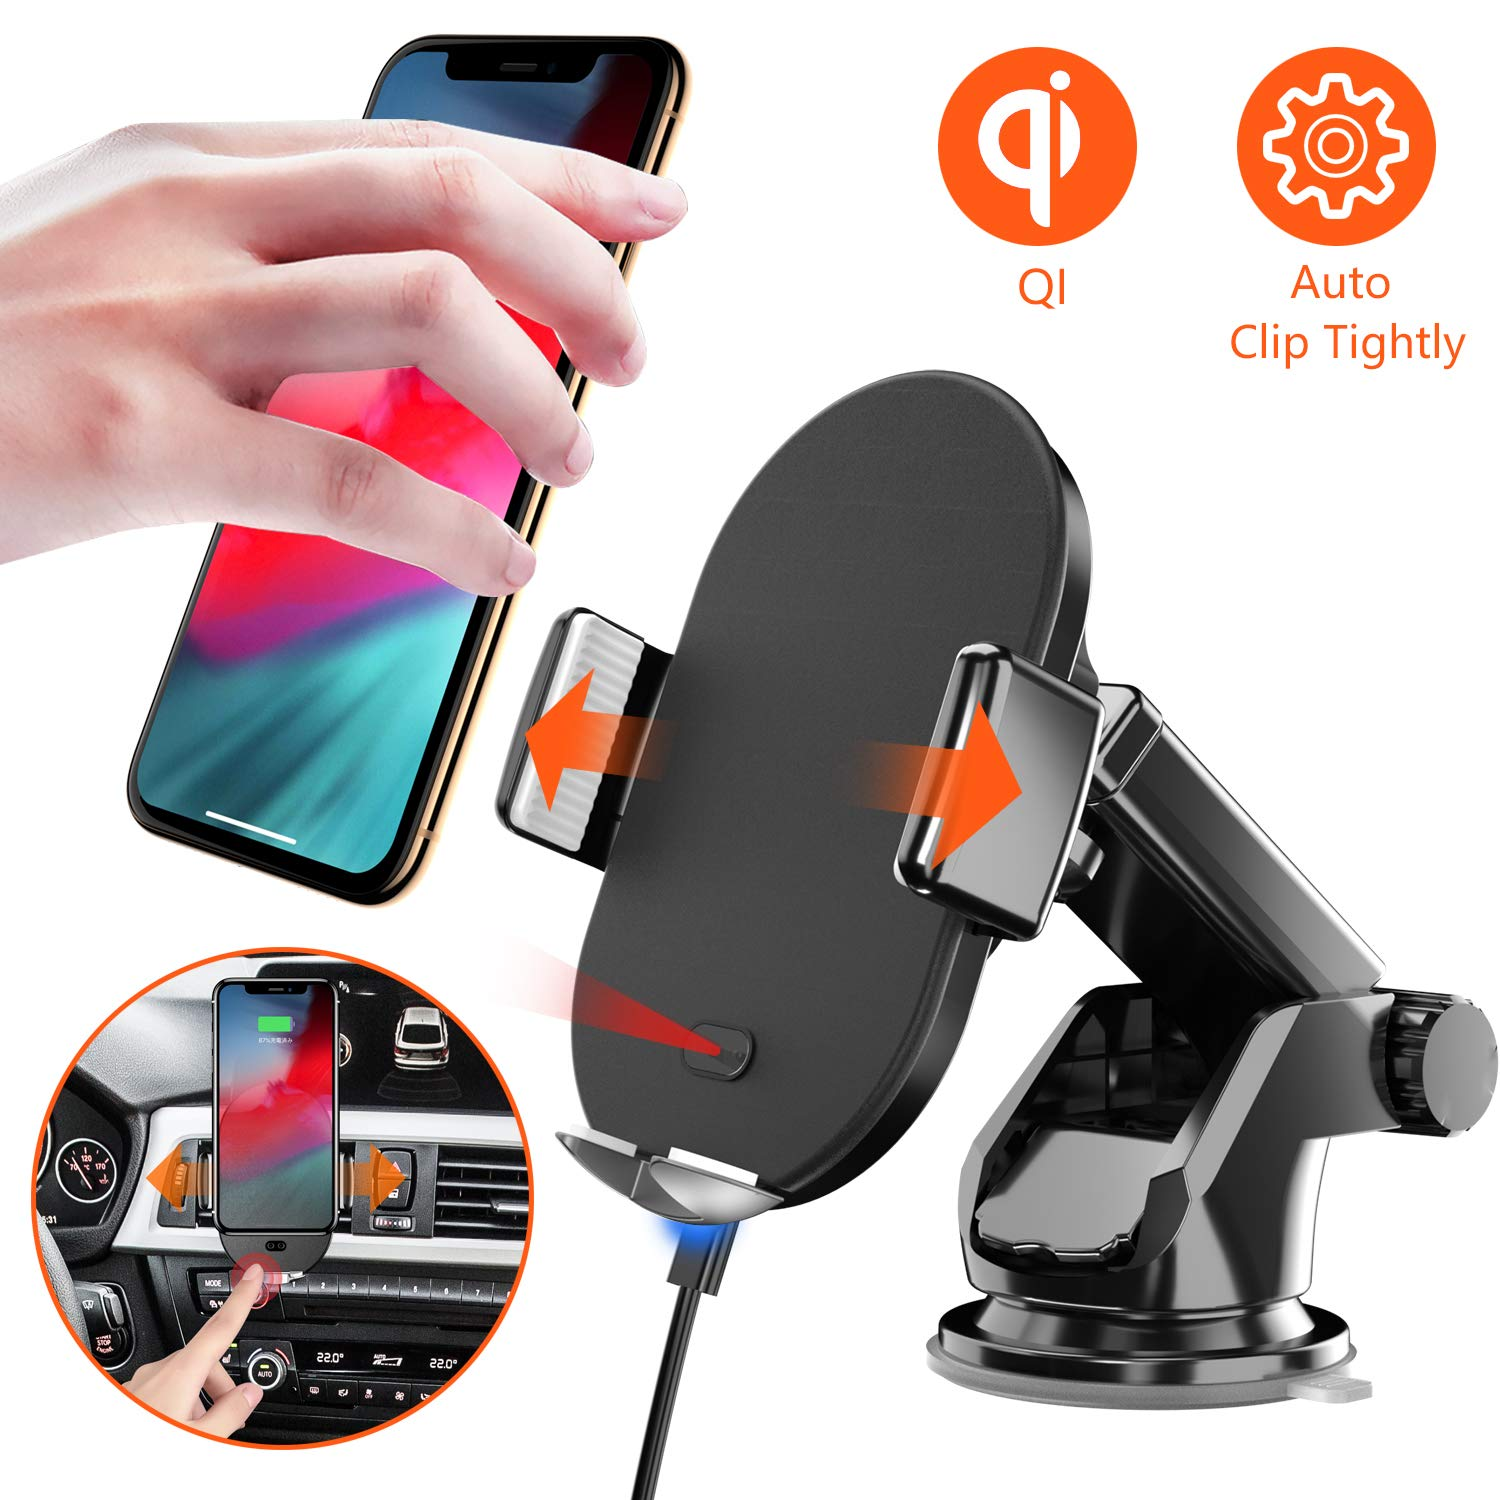 Seiaol Qi Wireless Car Phone Holder 10W for S10/S9/S8/S8 Plus/S7, 7.5W for iPhone XS/XR/X/8/8 +